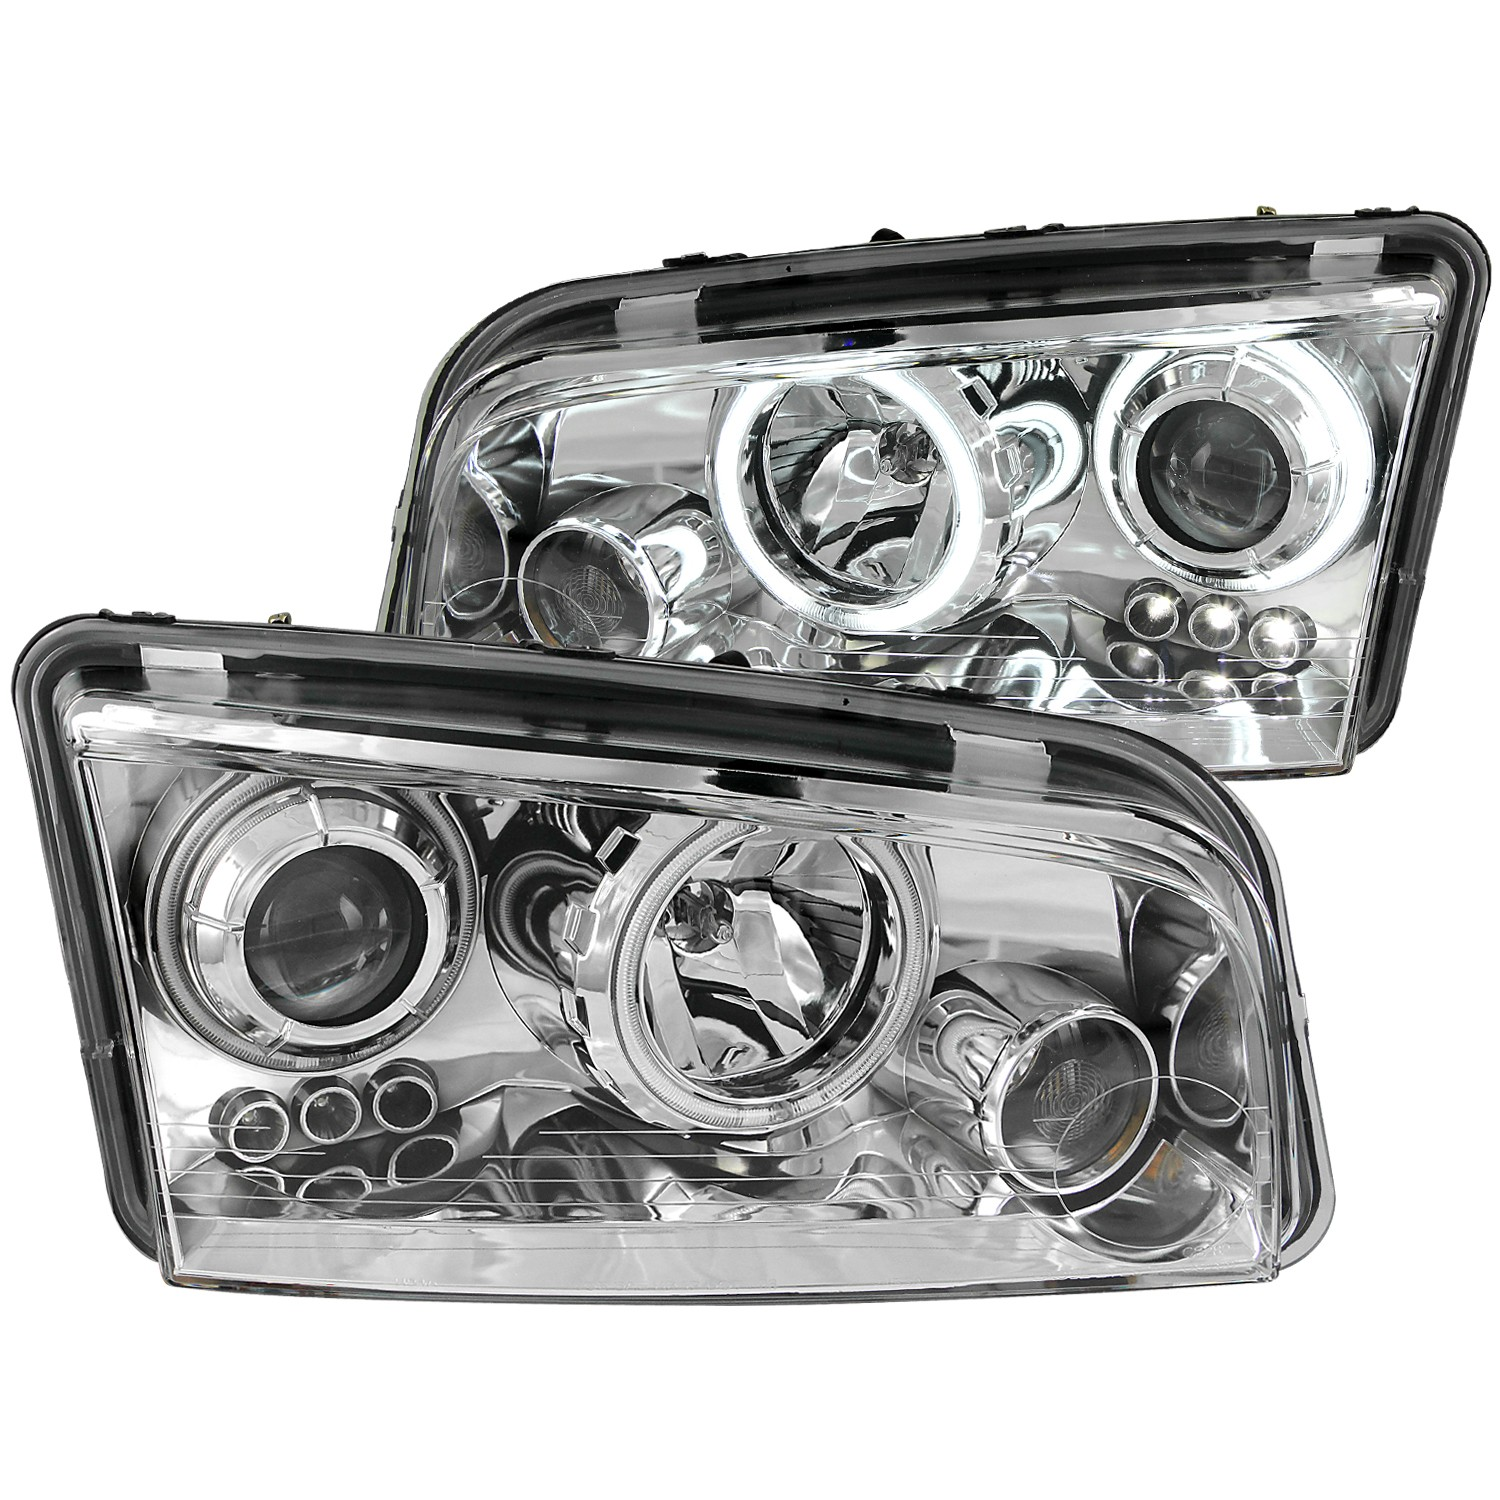 2006-2010 Dodge Charger ANZO Project Halo Head Lights & LED w/Halogen Bulbs, Clear Lens & Chrome Housing